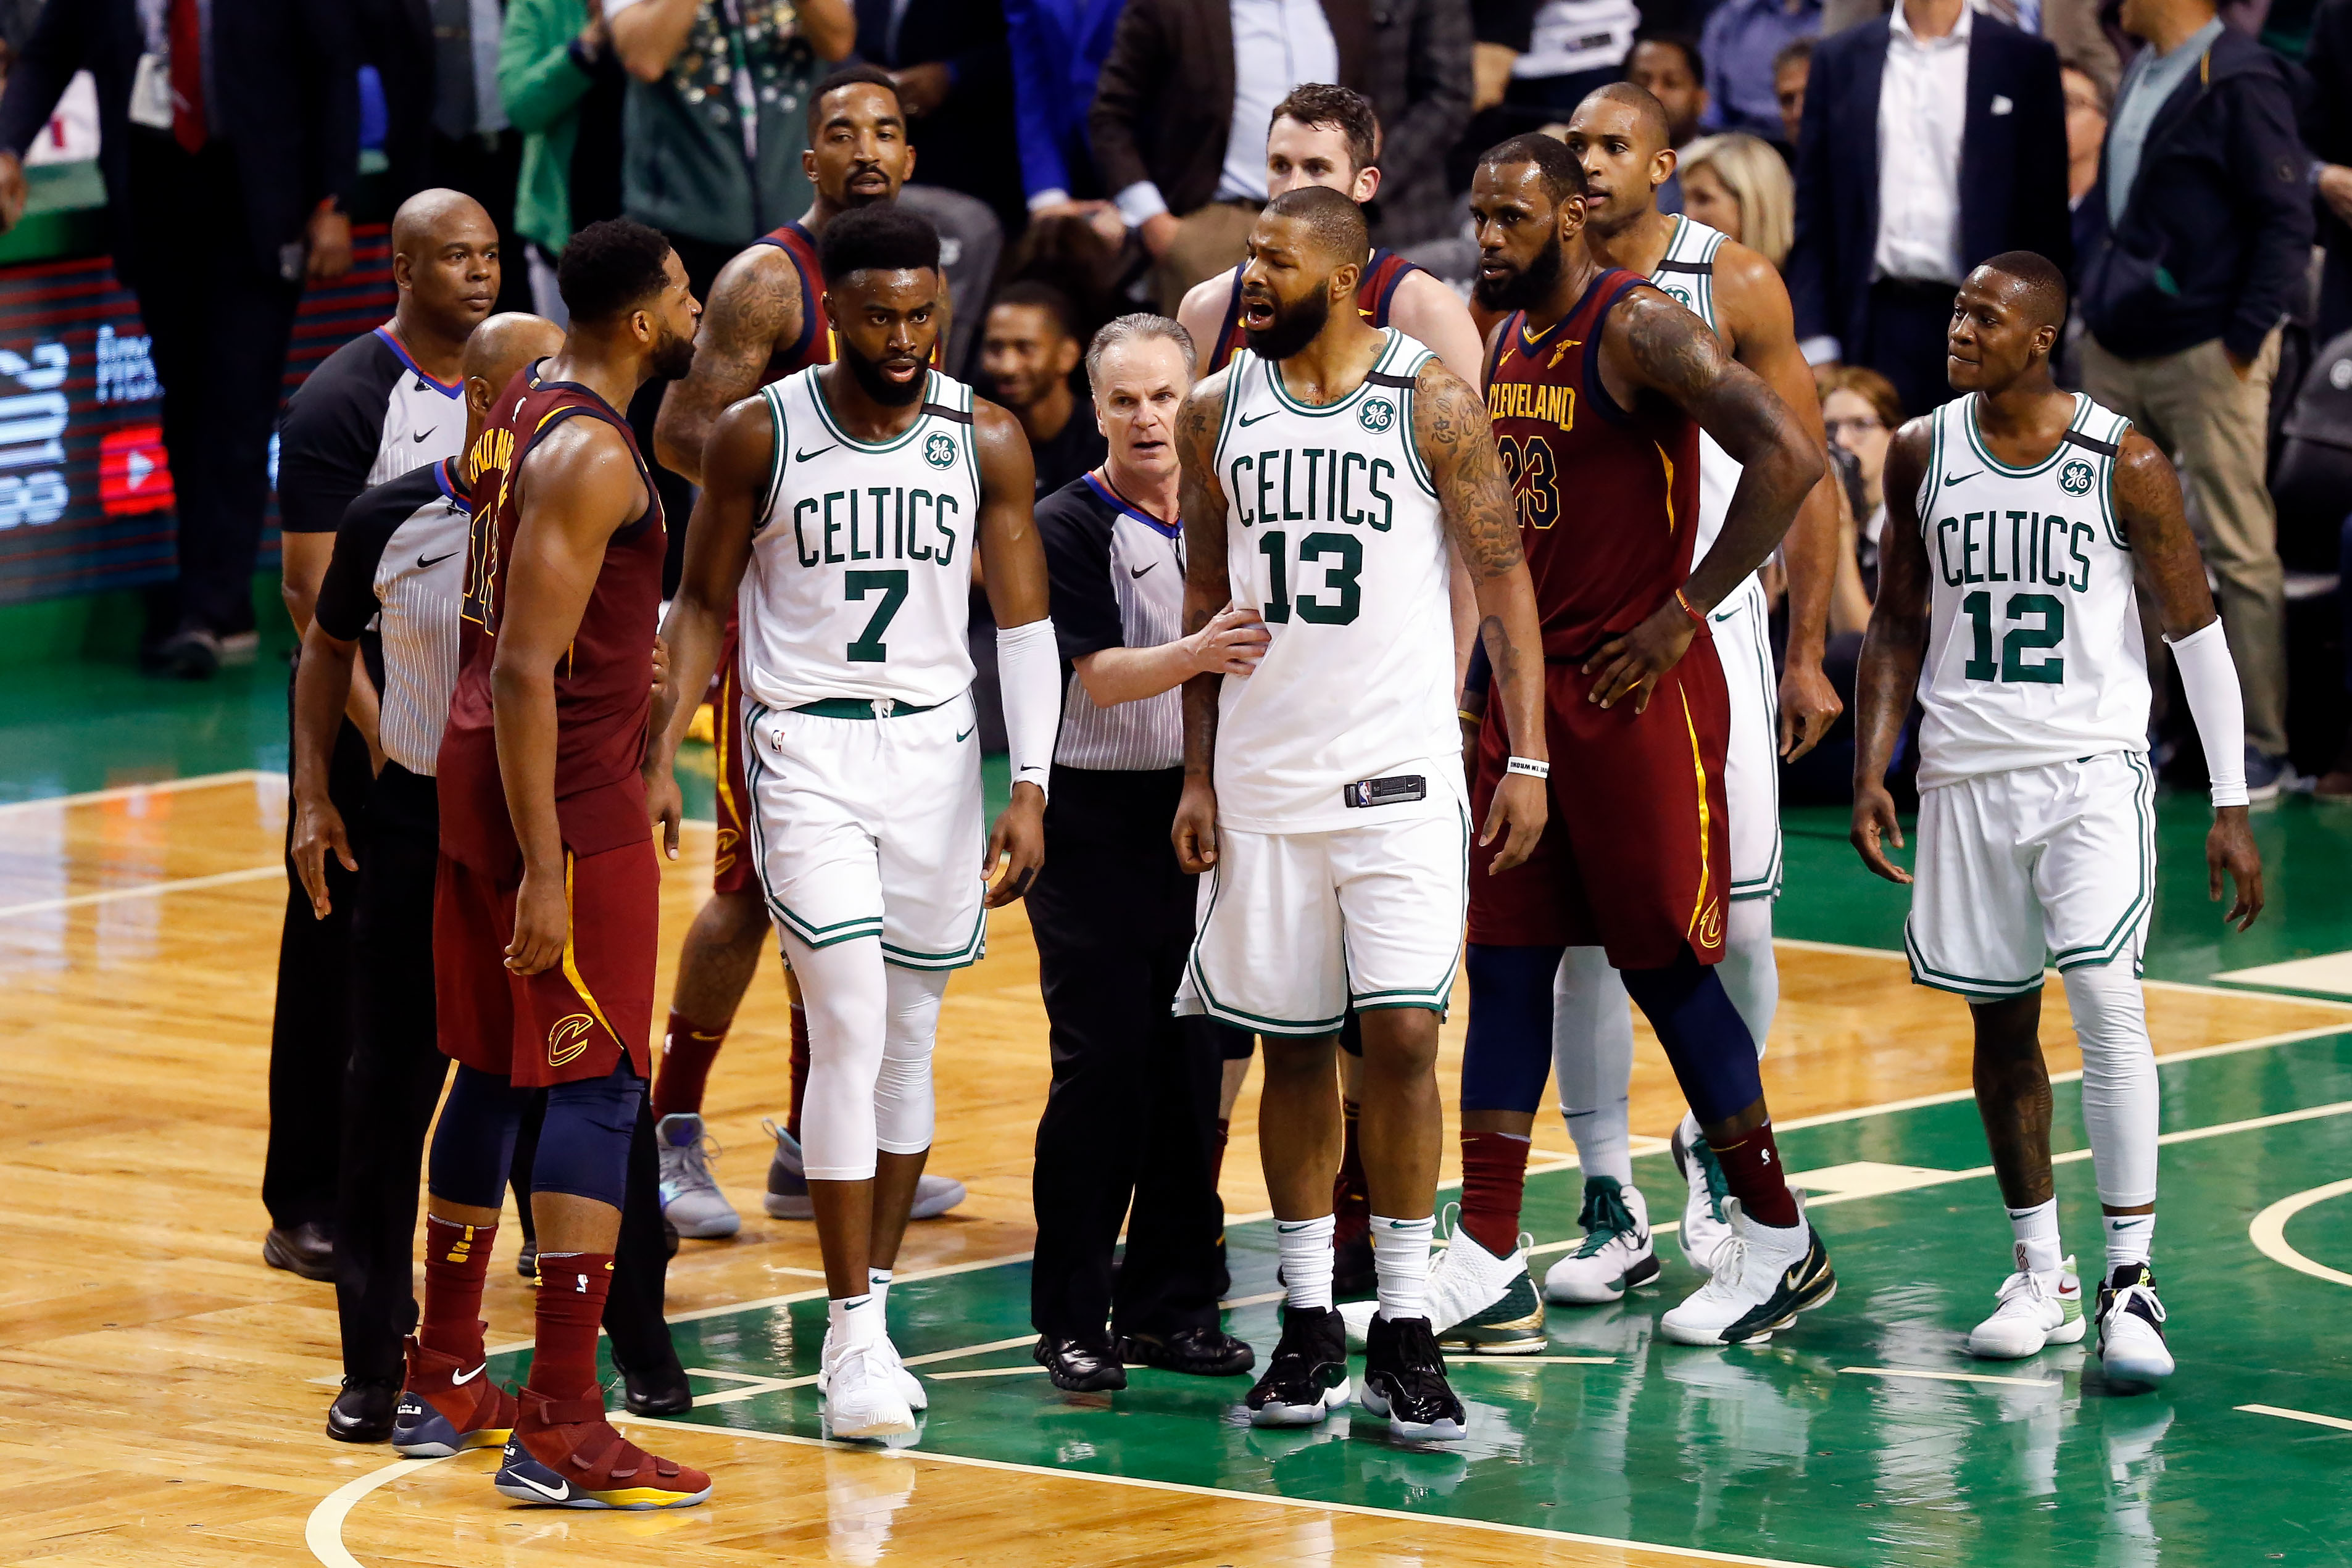 Boston MA USA Cleveland Cavaliers center Tristan Thompson and Boston Celtics forward Marcus Morris exchange words after a play during the third quarter of game two of the Eastern conference finals of the 2018 NBA Playoffs at TD